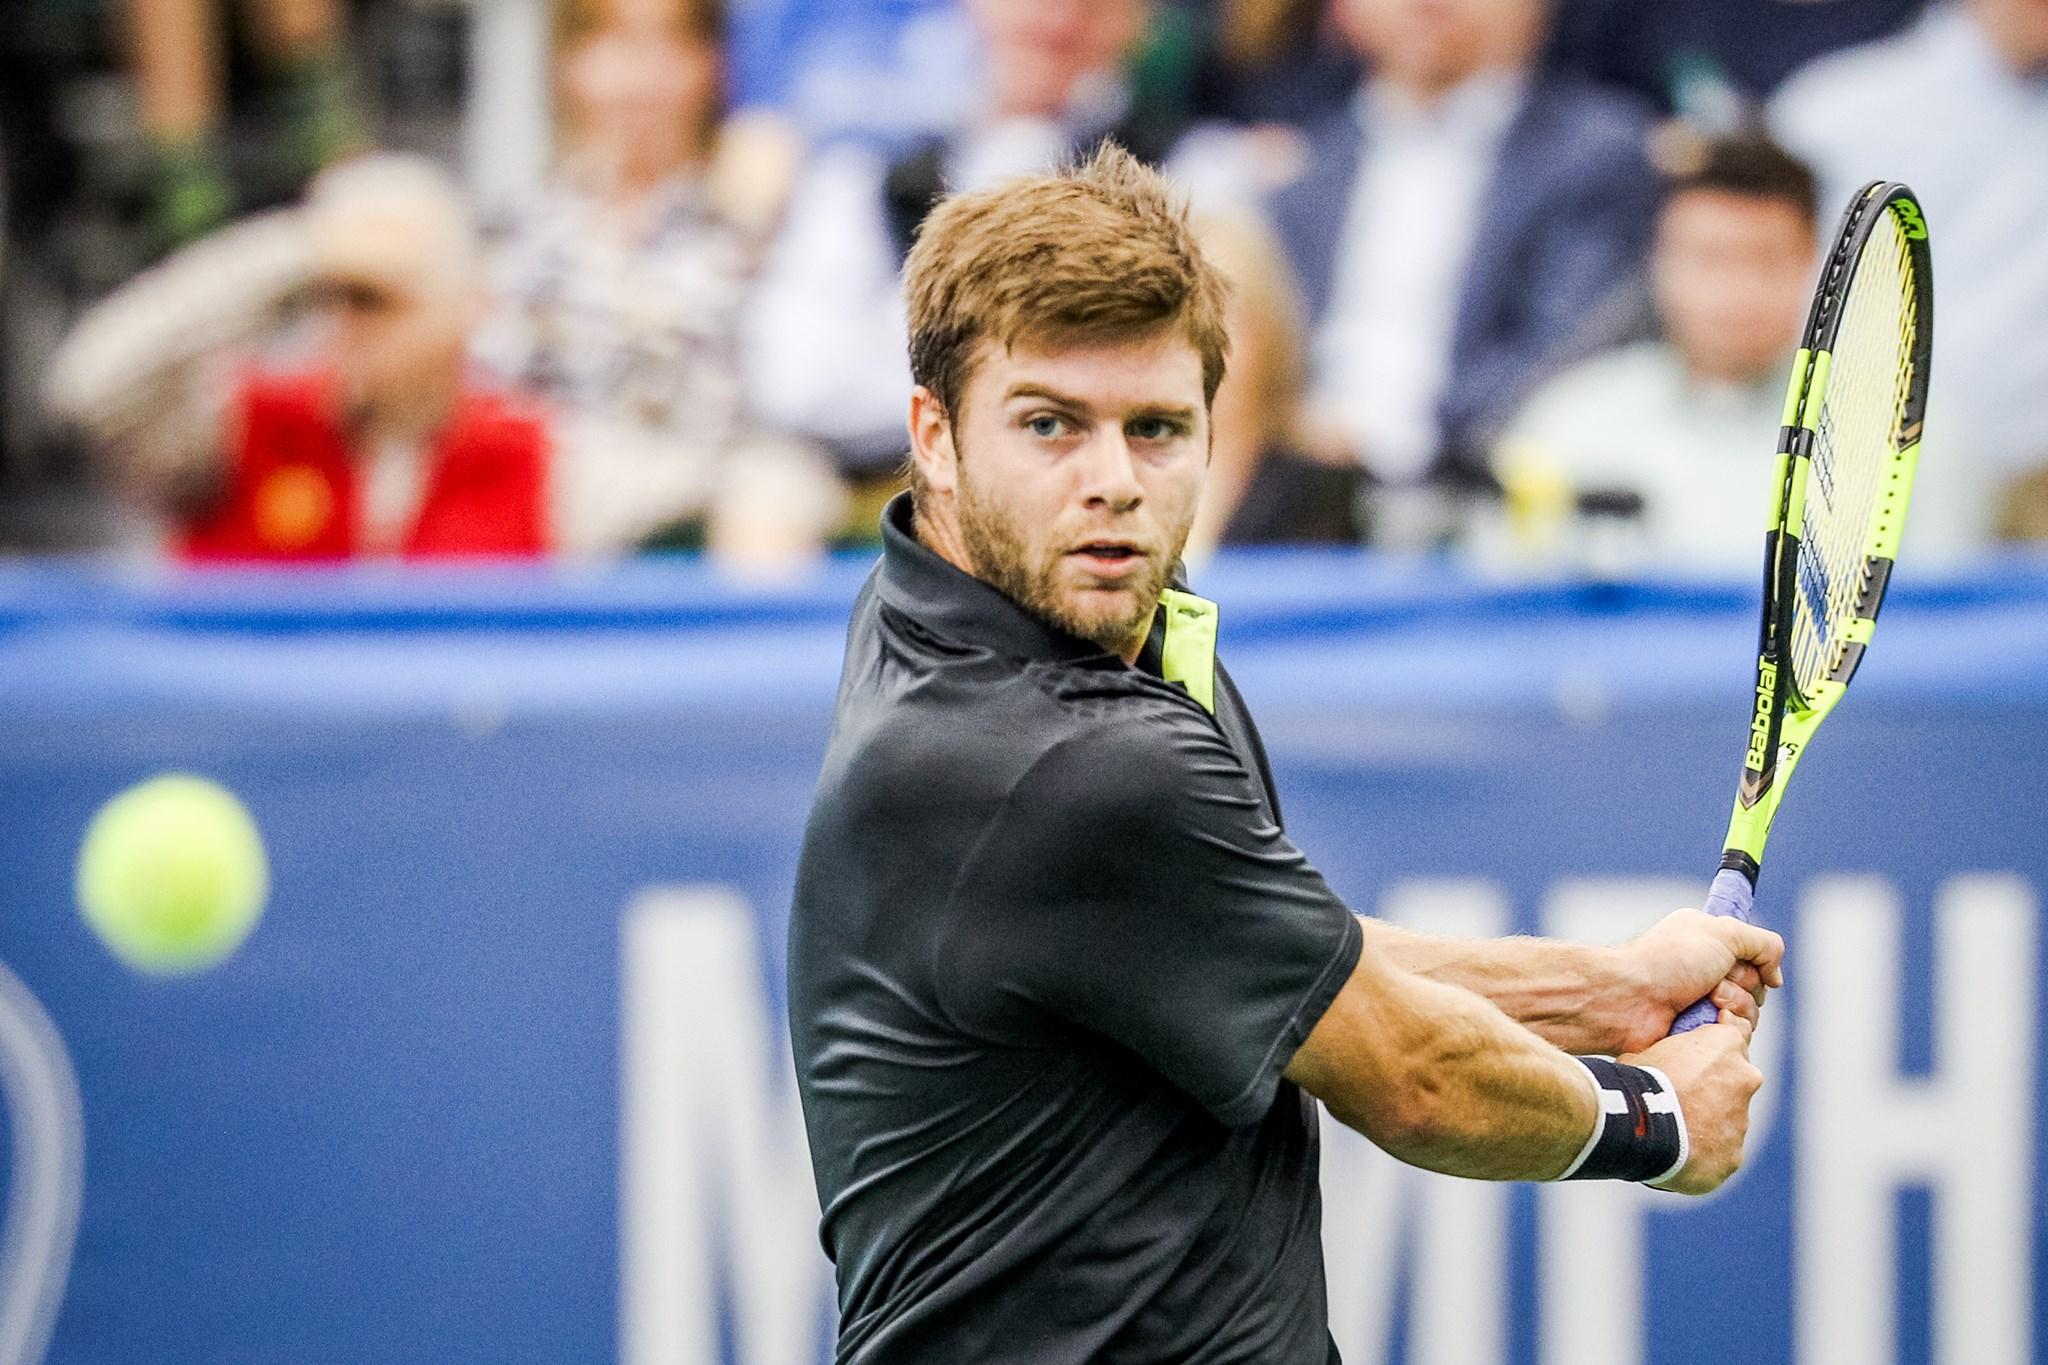 Ryan Harrison Unstoppable in Winning Maiden ATP Title in Memphis